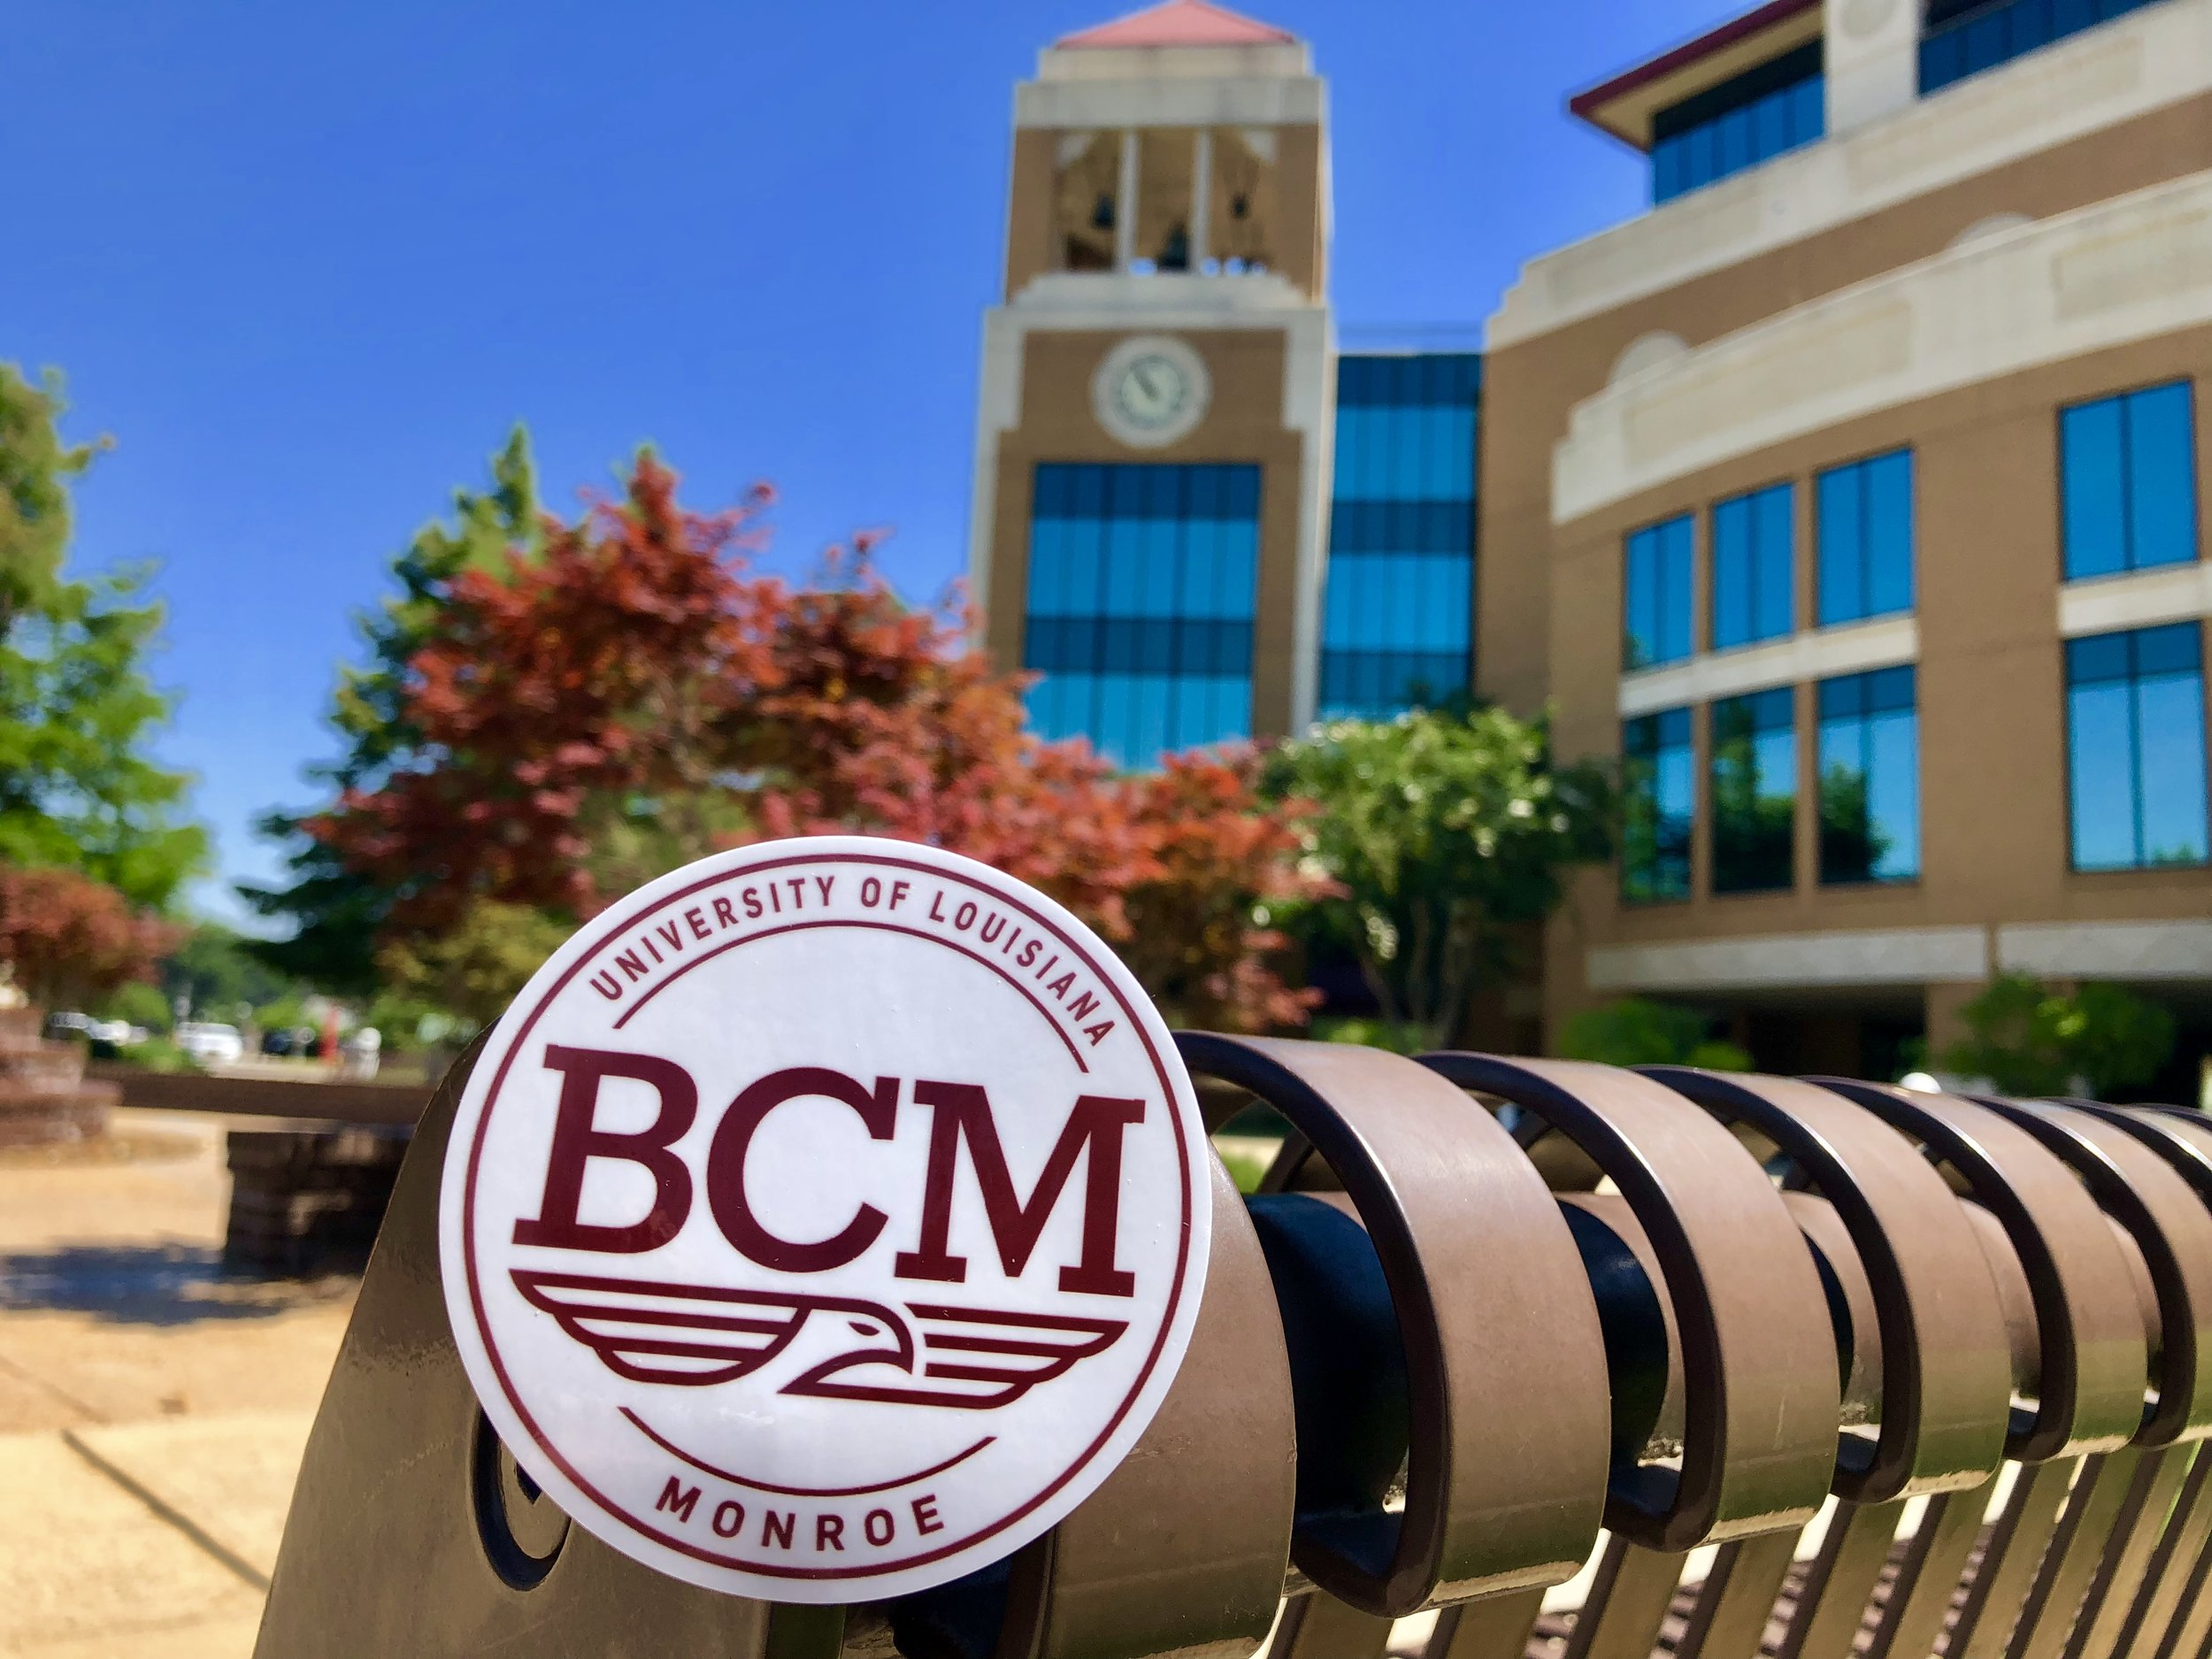 Look Below to Connect with ULM BCM: -